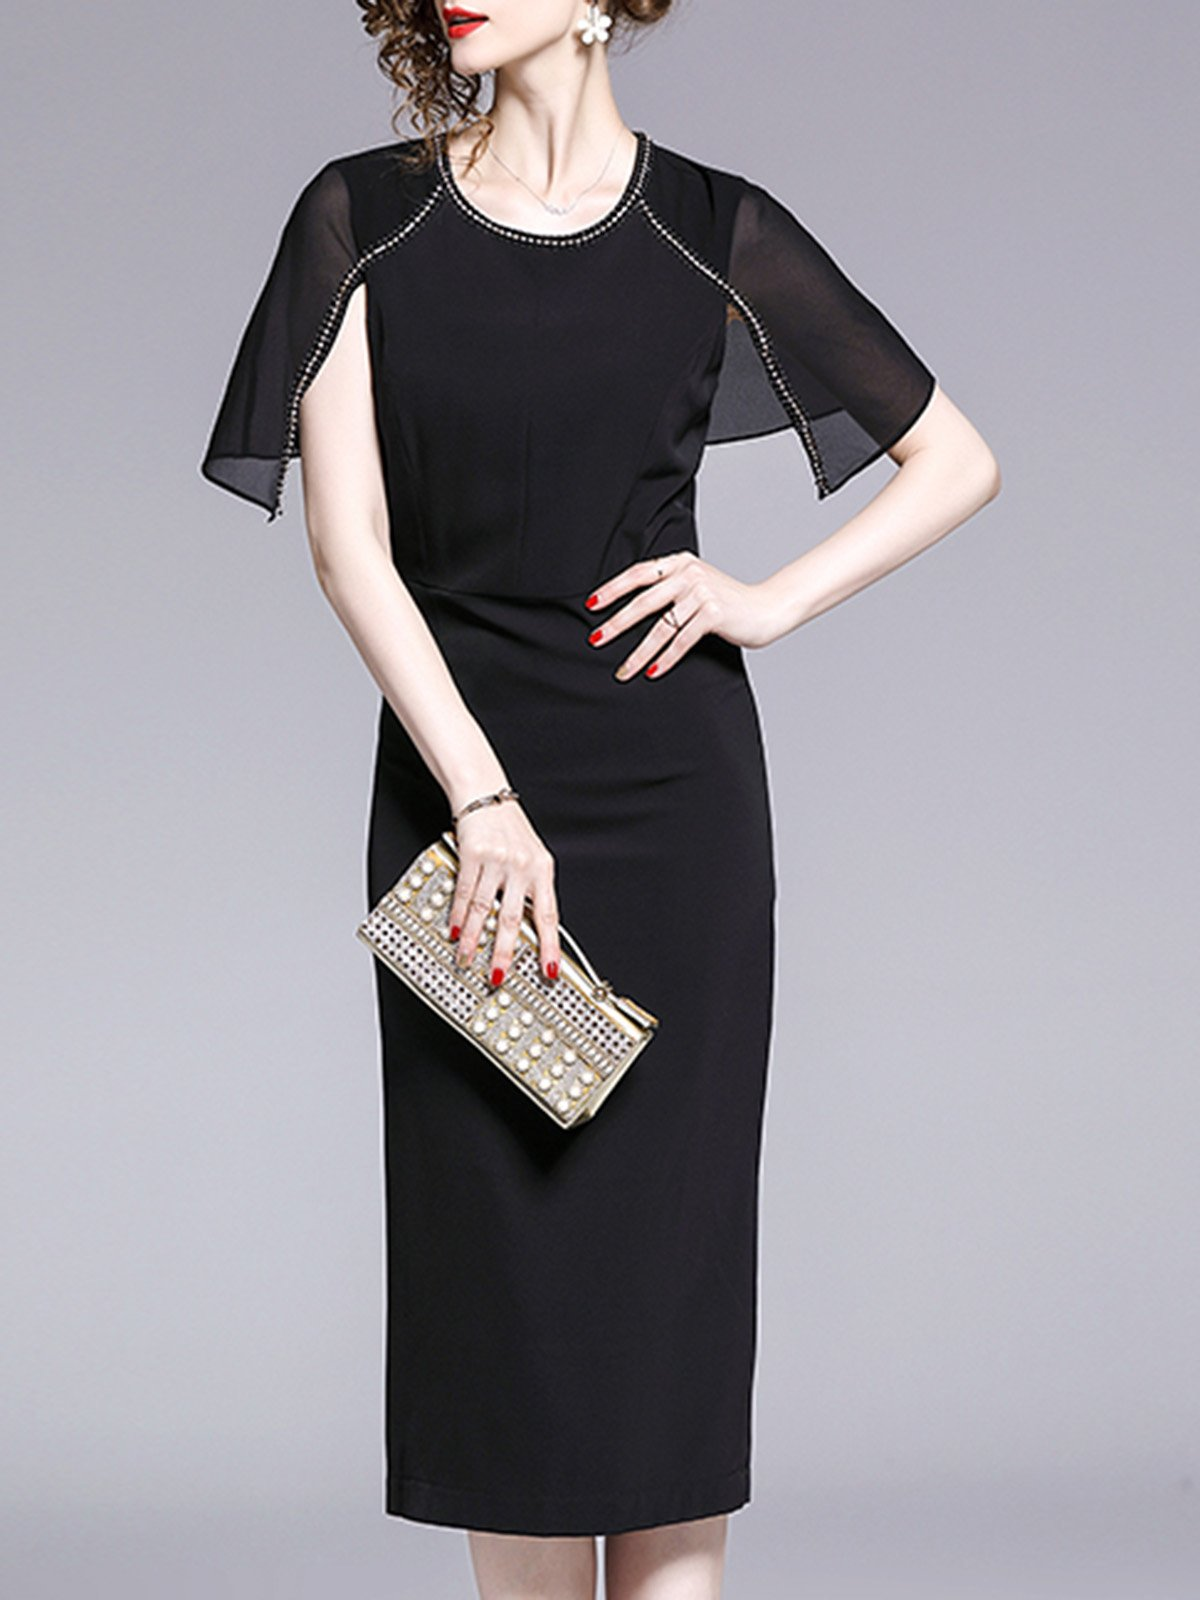 Black A-Line Party Paneled Solid Elegant Midi Dress